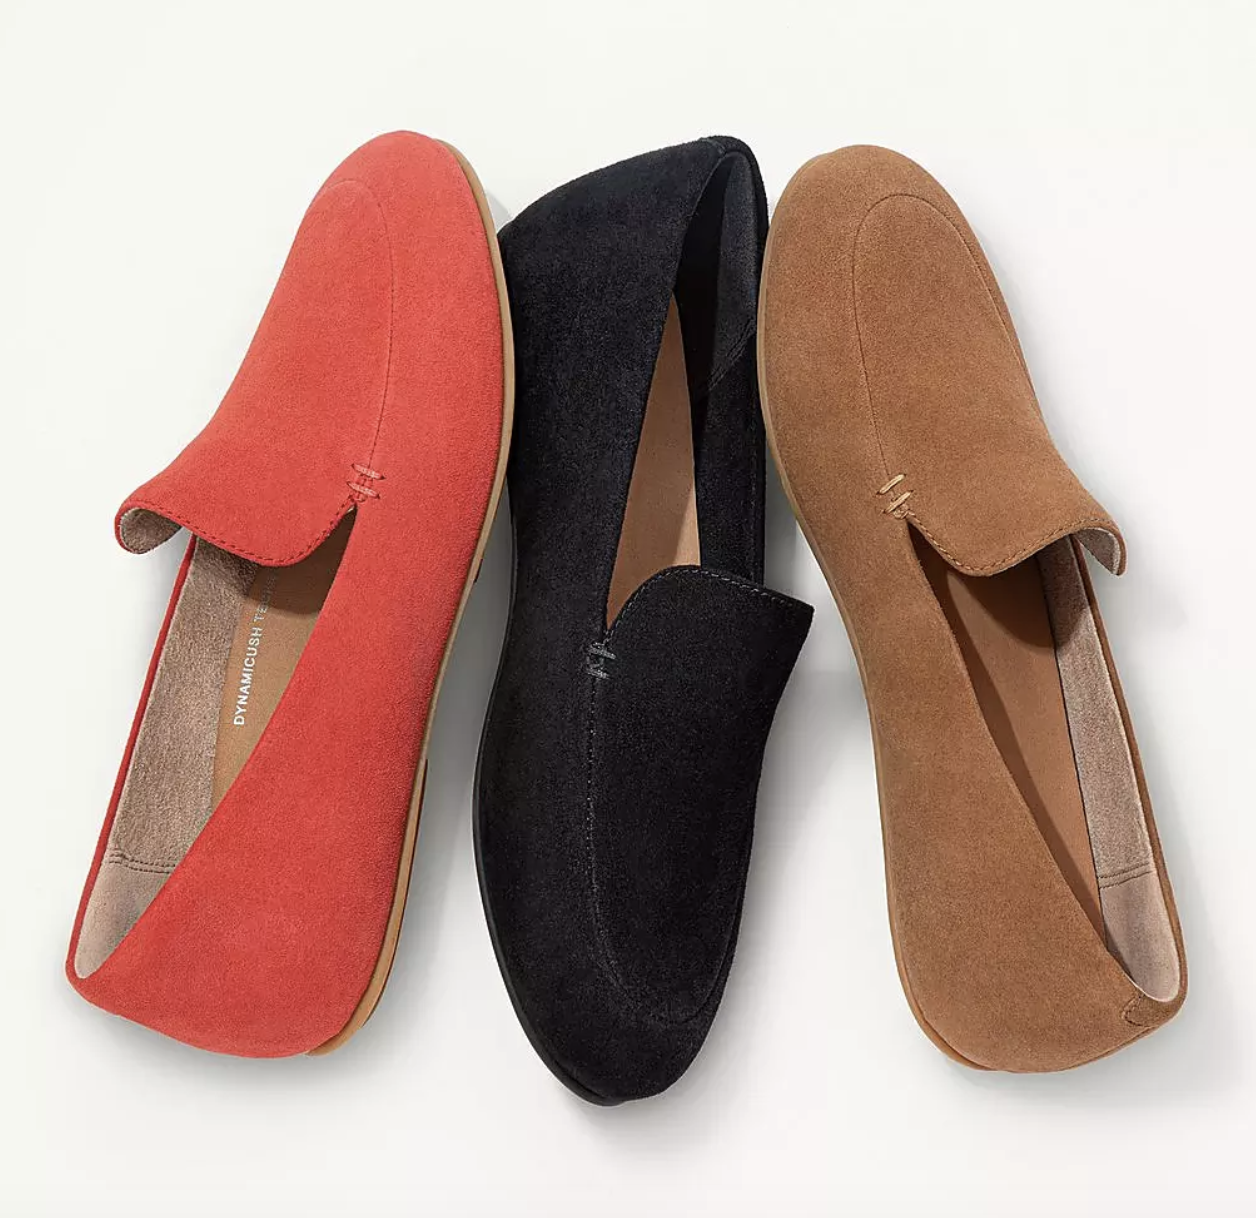 the loafers in red, black, and camel